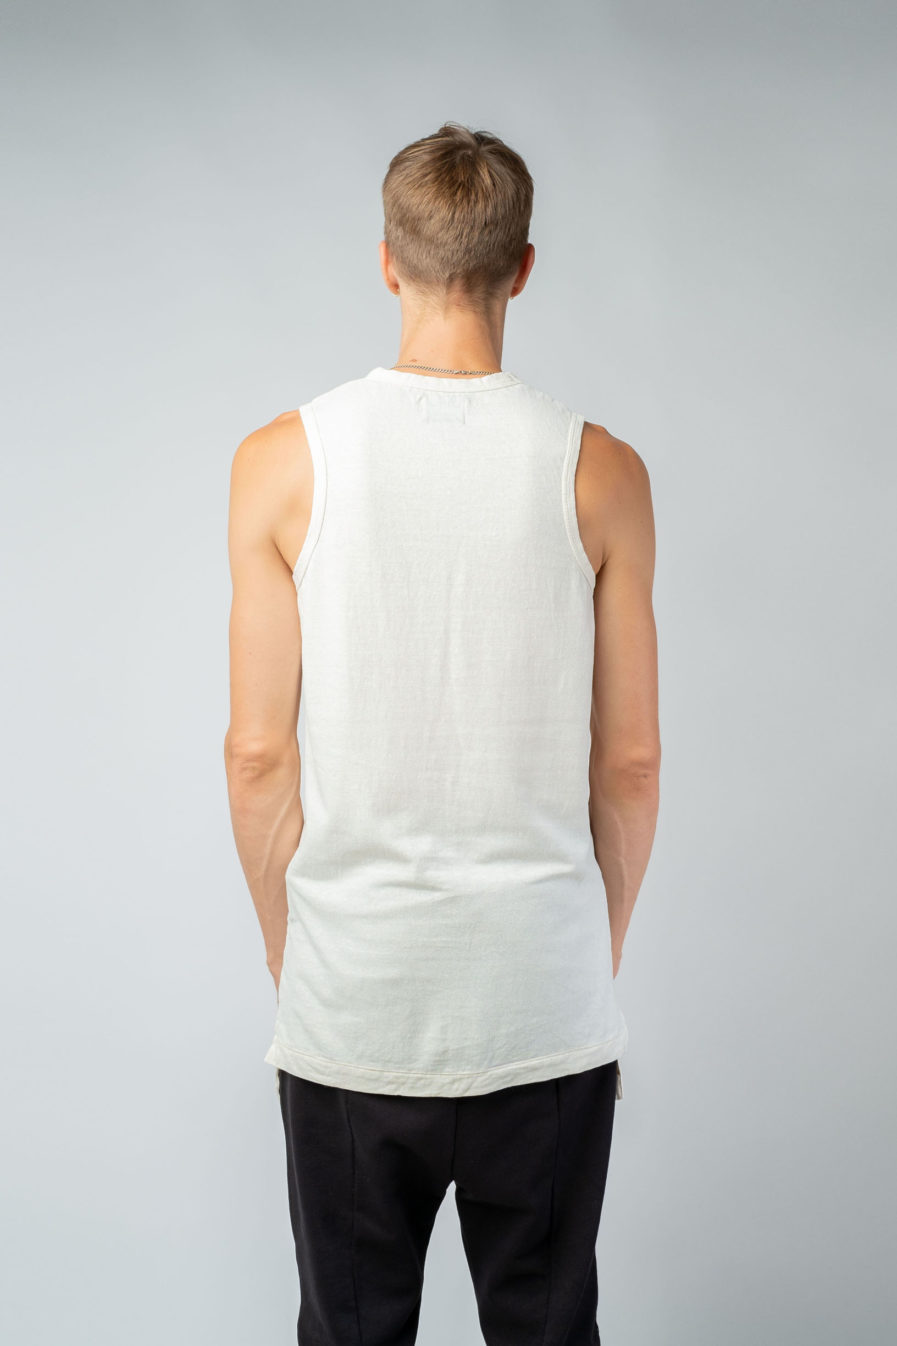 MAN unisex singlet tanktop hemp organic cotton MALIK Blank canvas back